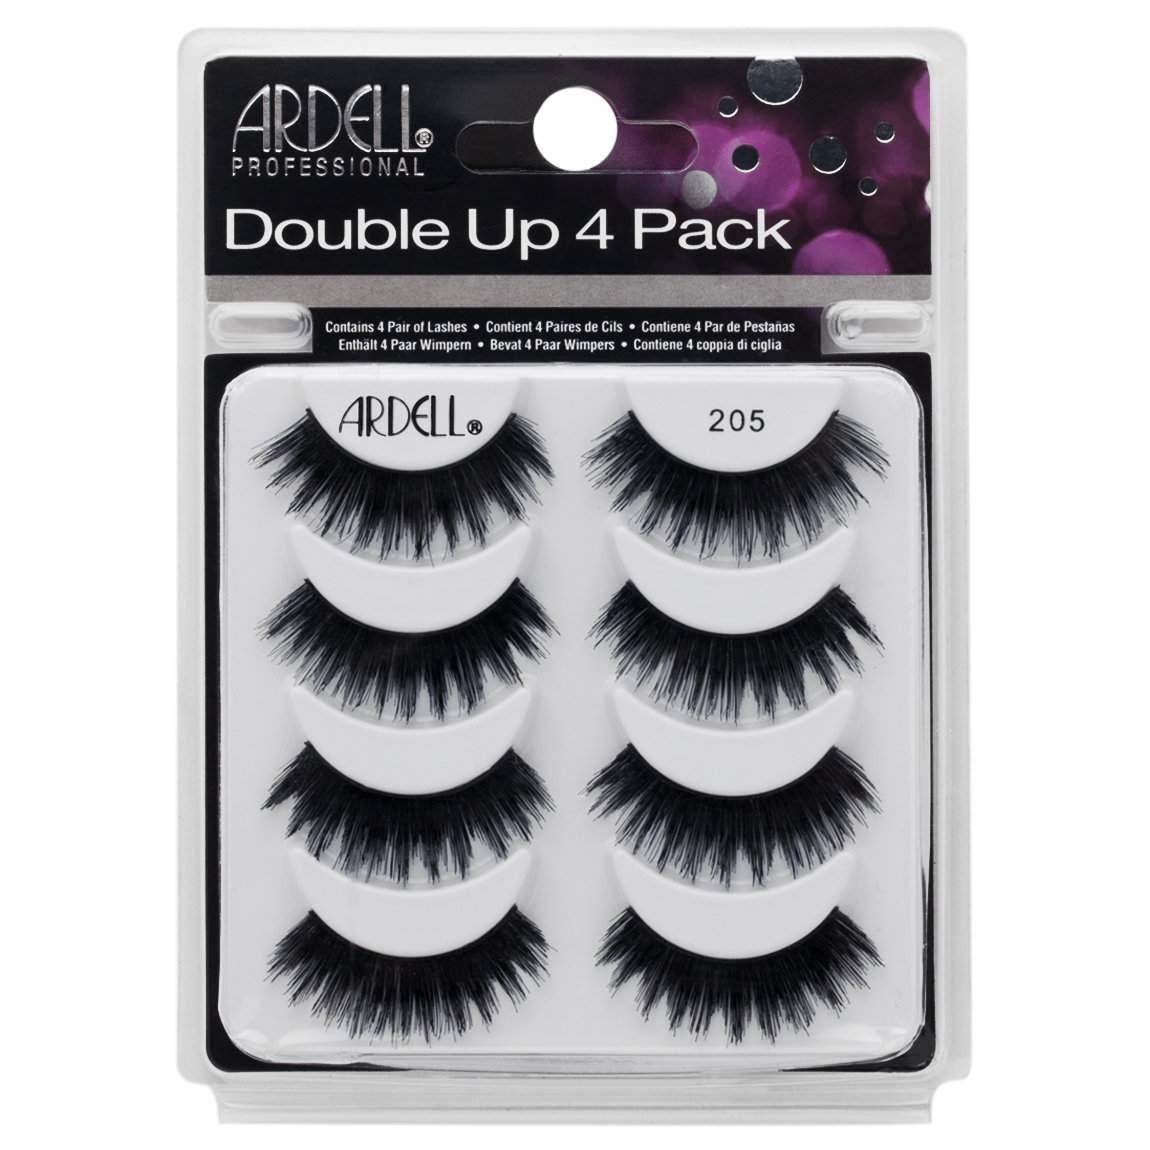 Ardell Double Up 4 Pack  205